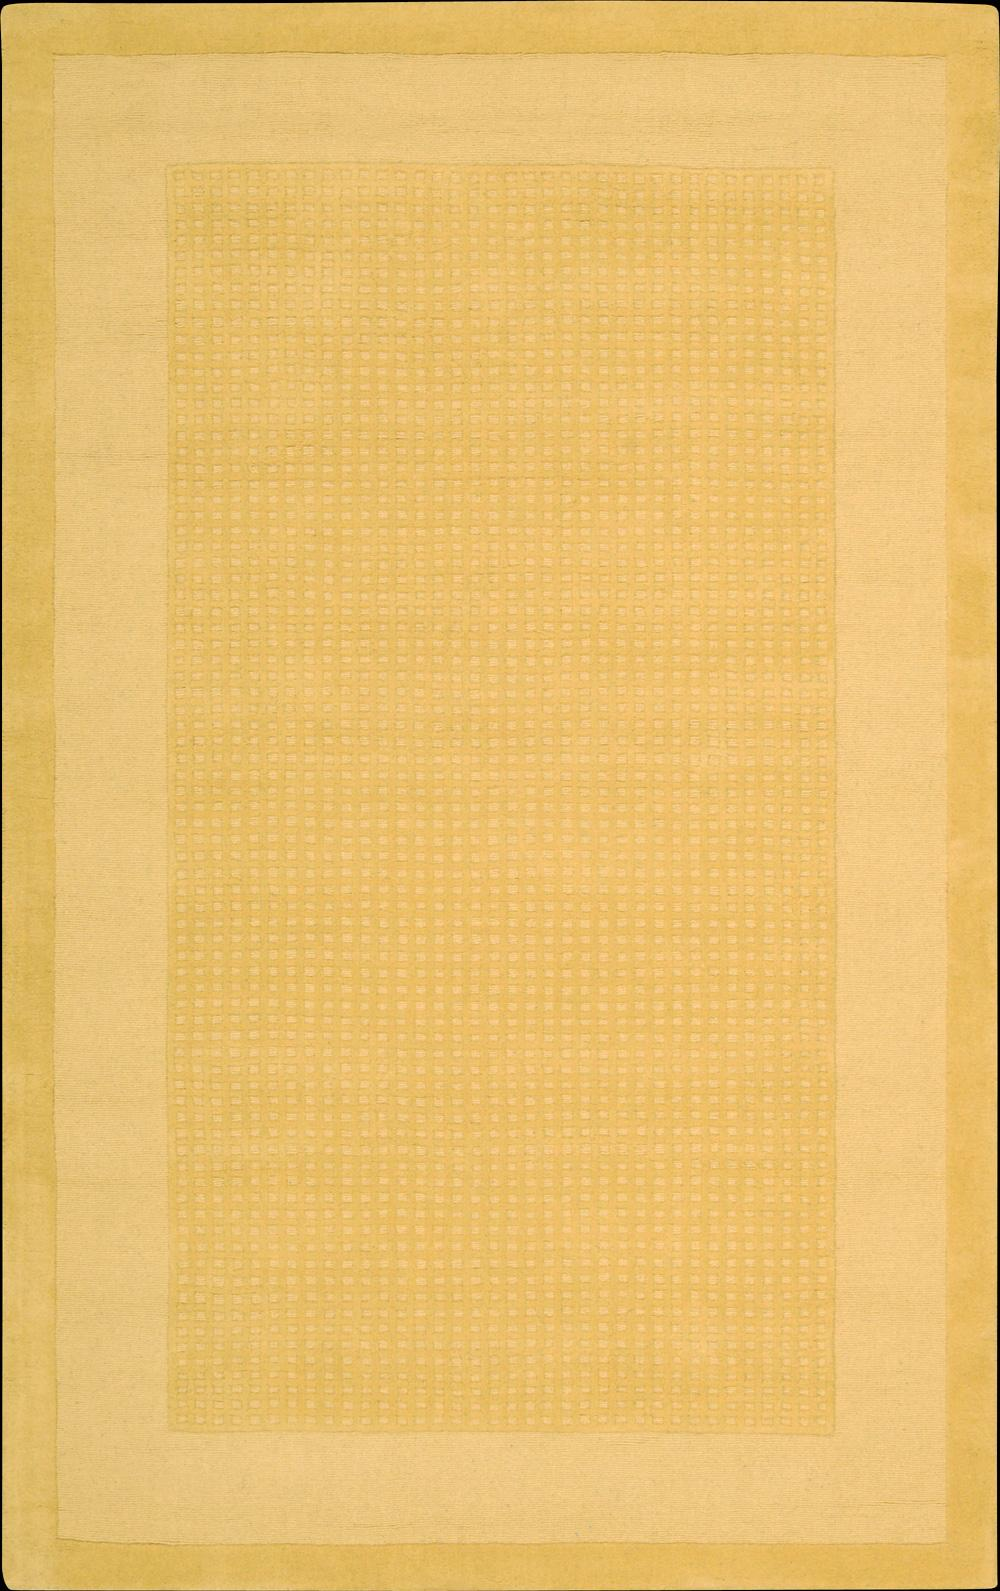 Nourison Westport Area Rug 5' x 8' - Item Number: 75803